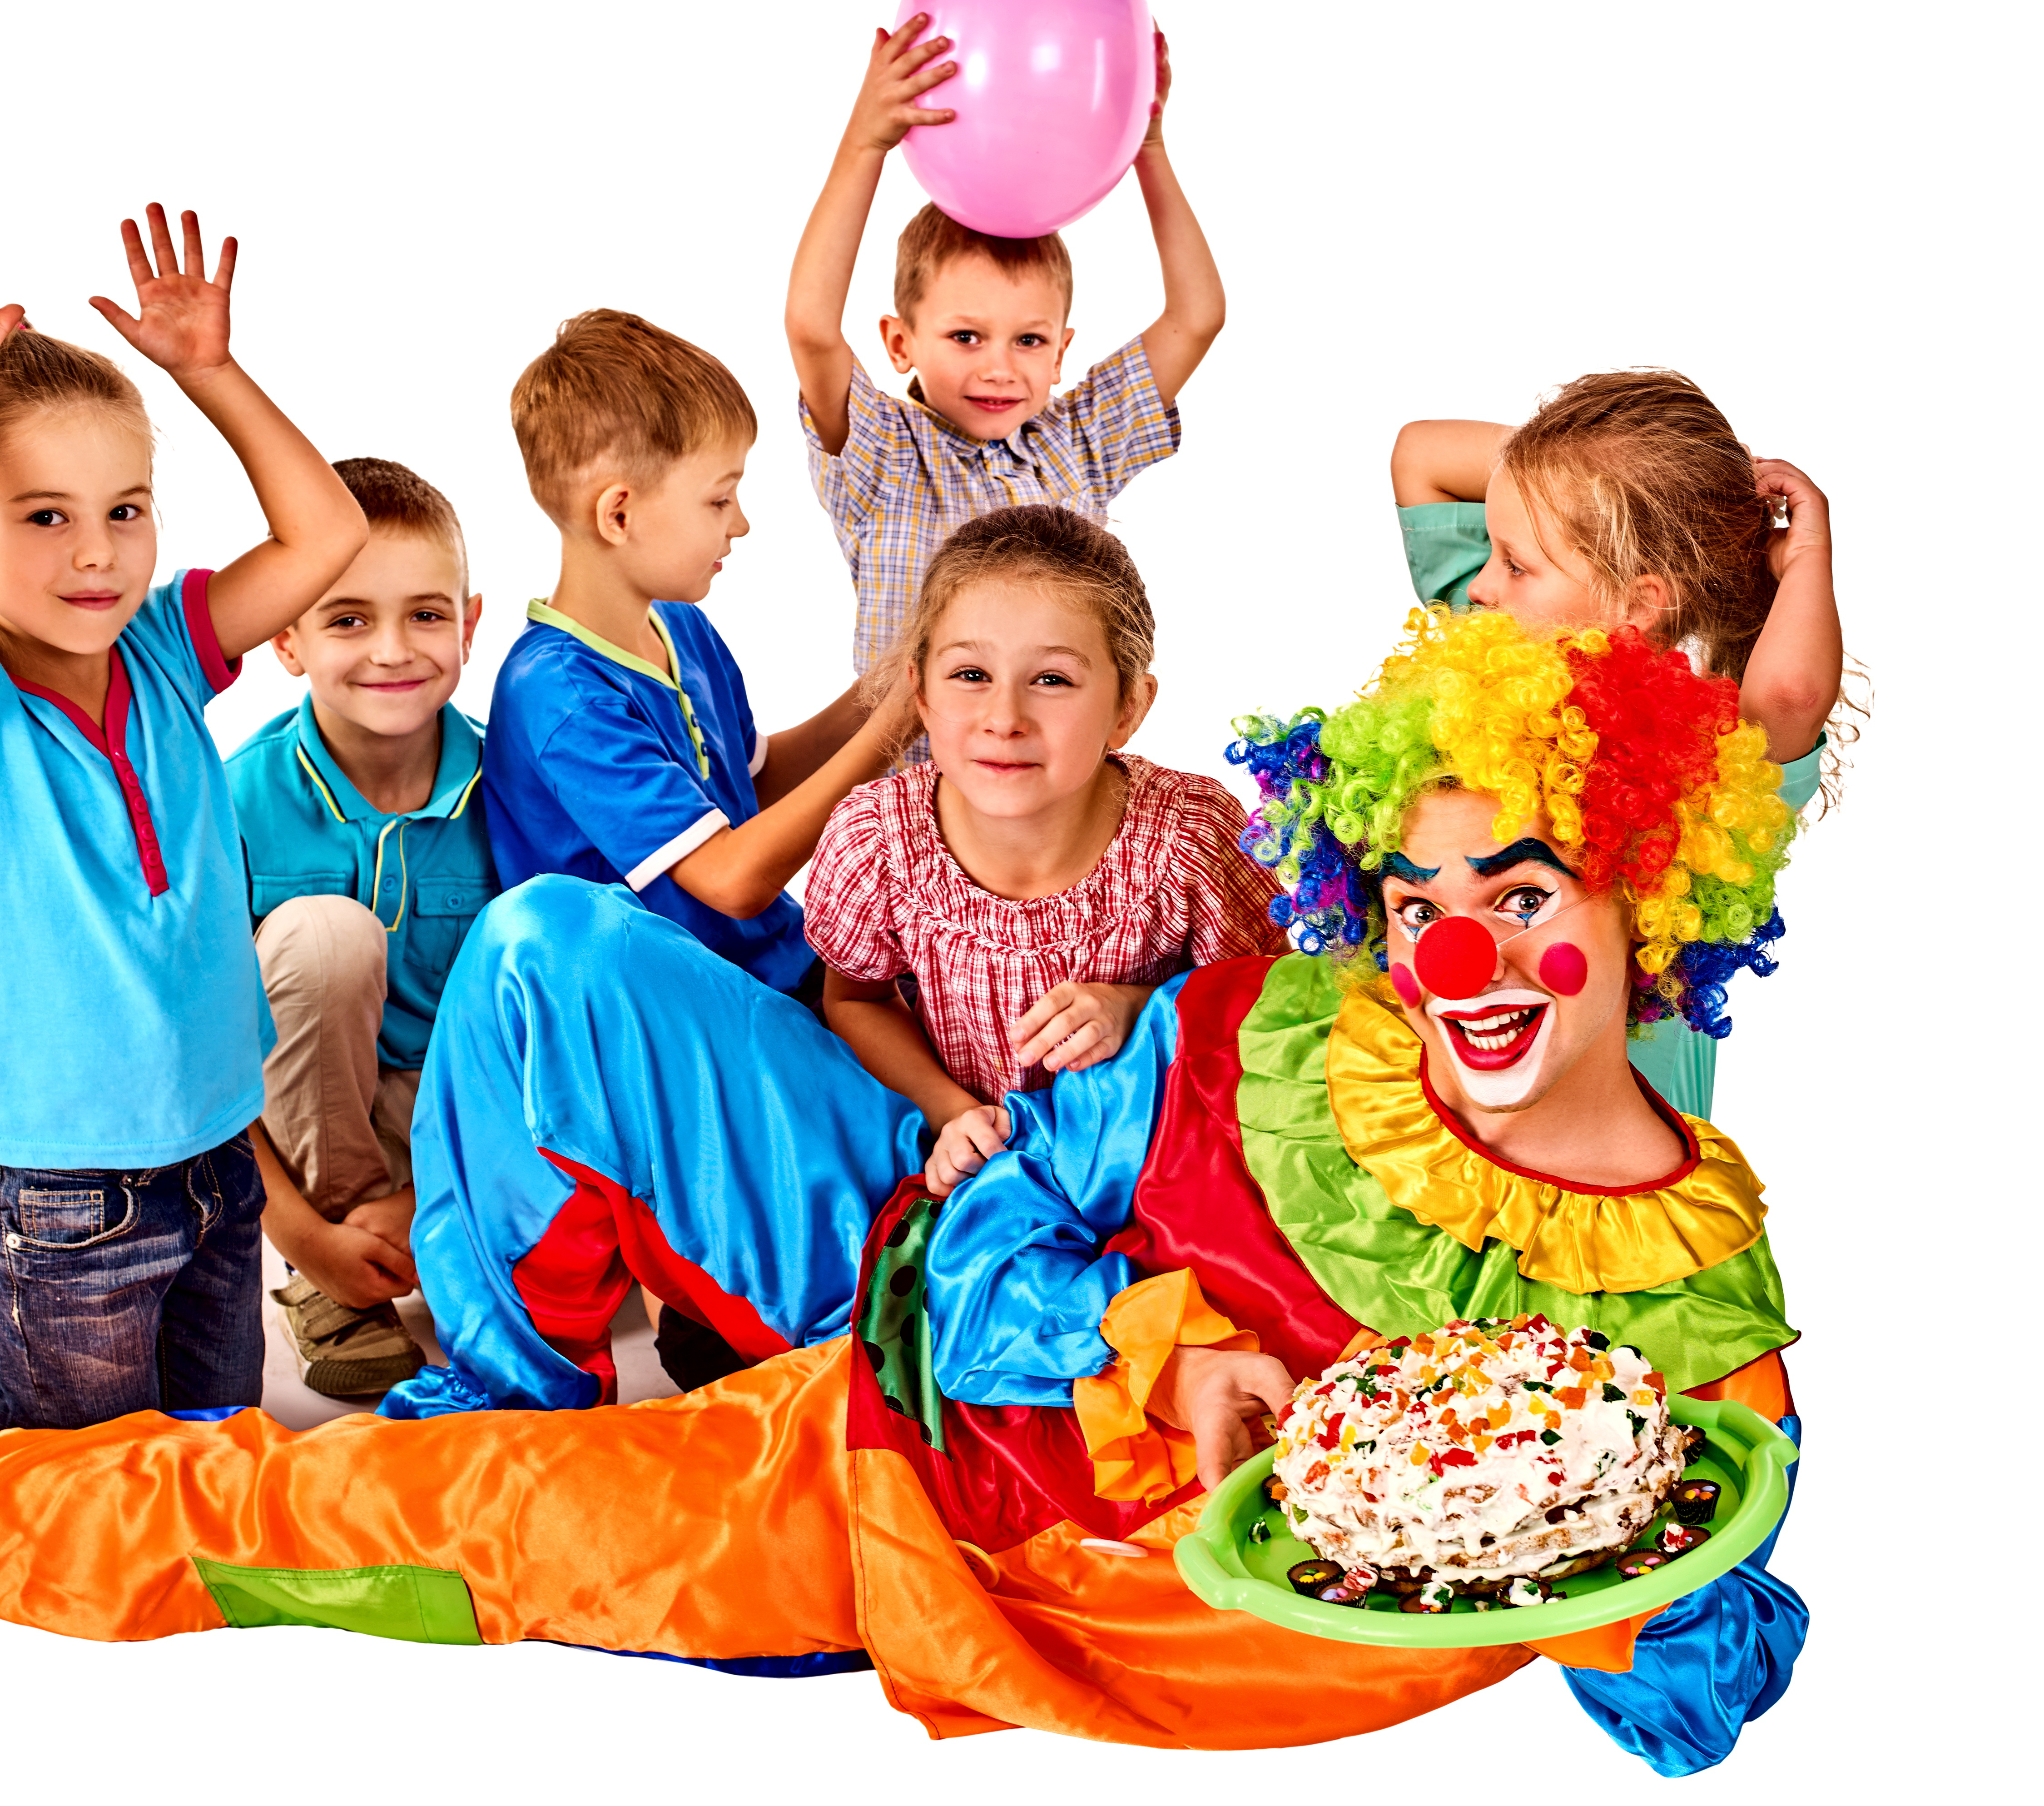 clown with children and birthday cake